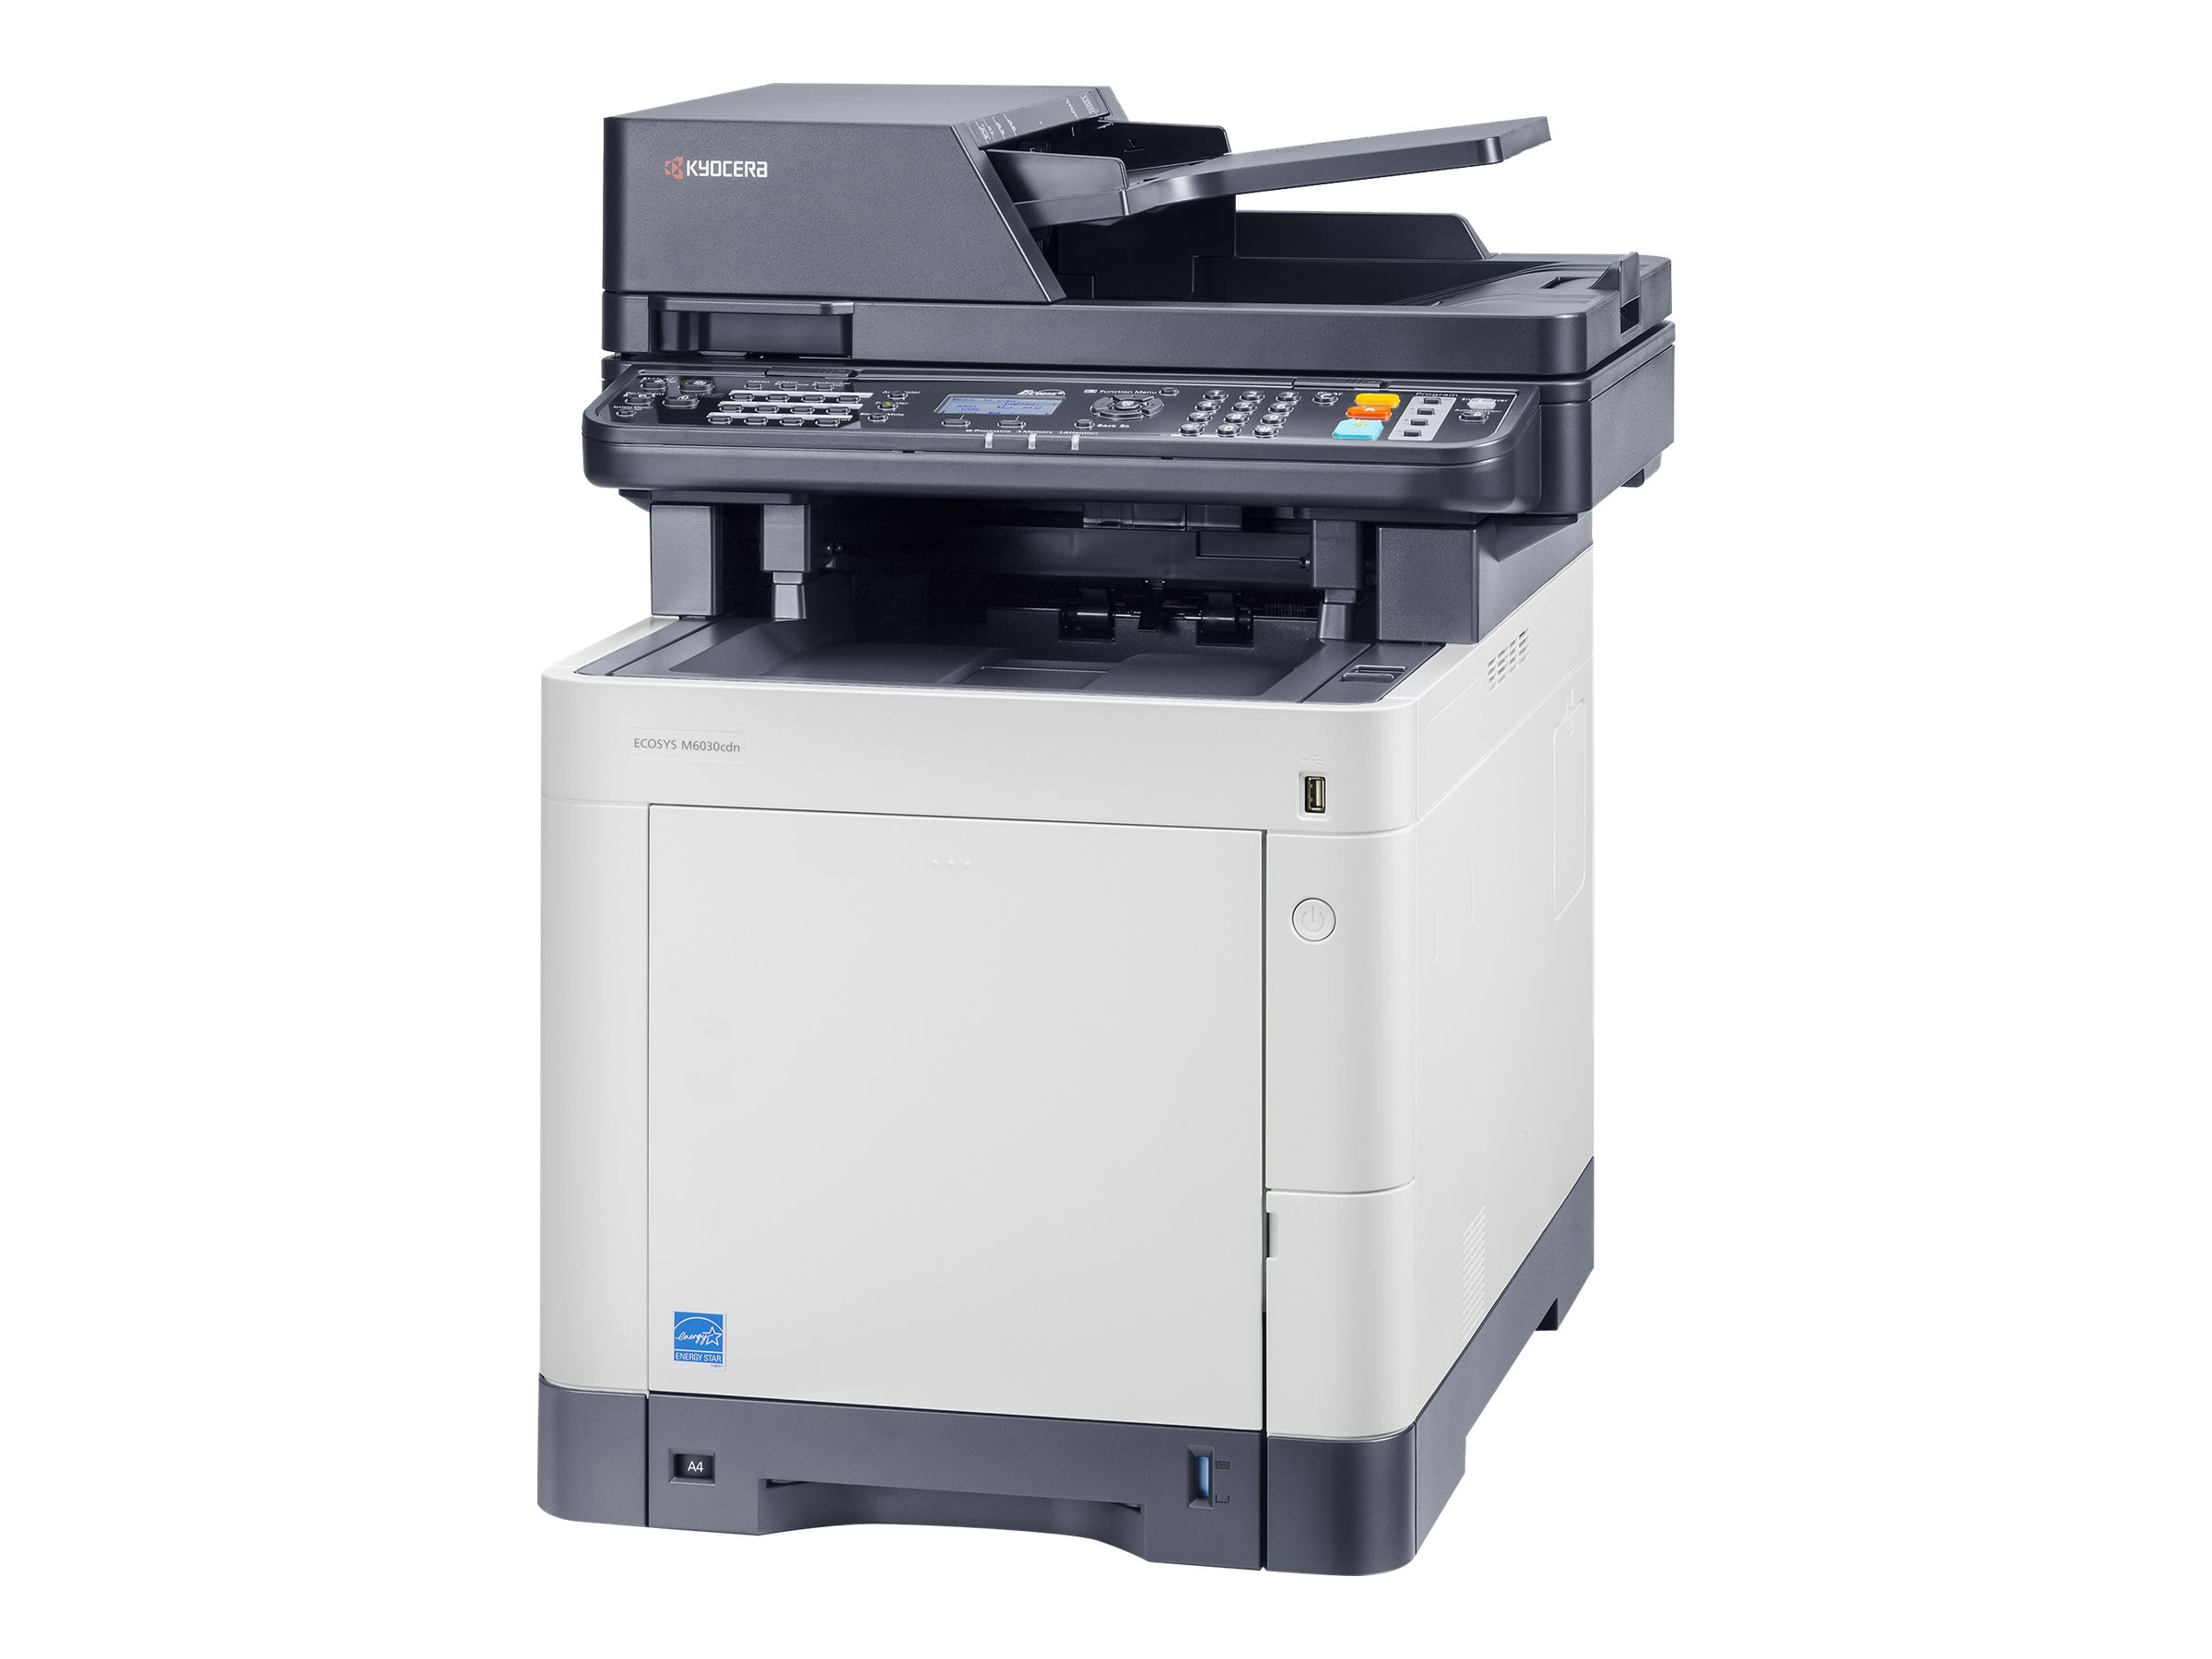 Kyocera ECOSYS M6030cdn/KL3 - Multifunktionsdrucker - Farbe - Laser - Legal (216 x 356 mm)/A4 (210 x 297 mm) (Original) - A4/Legal (Medien)